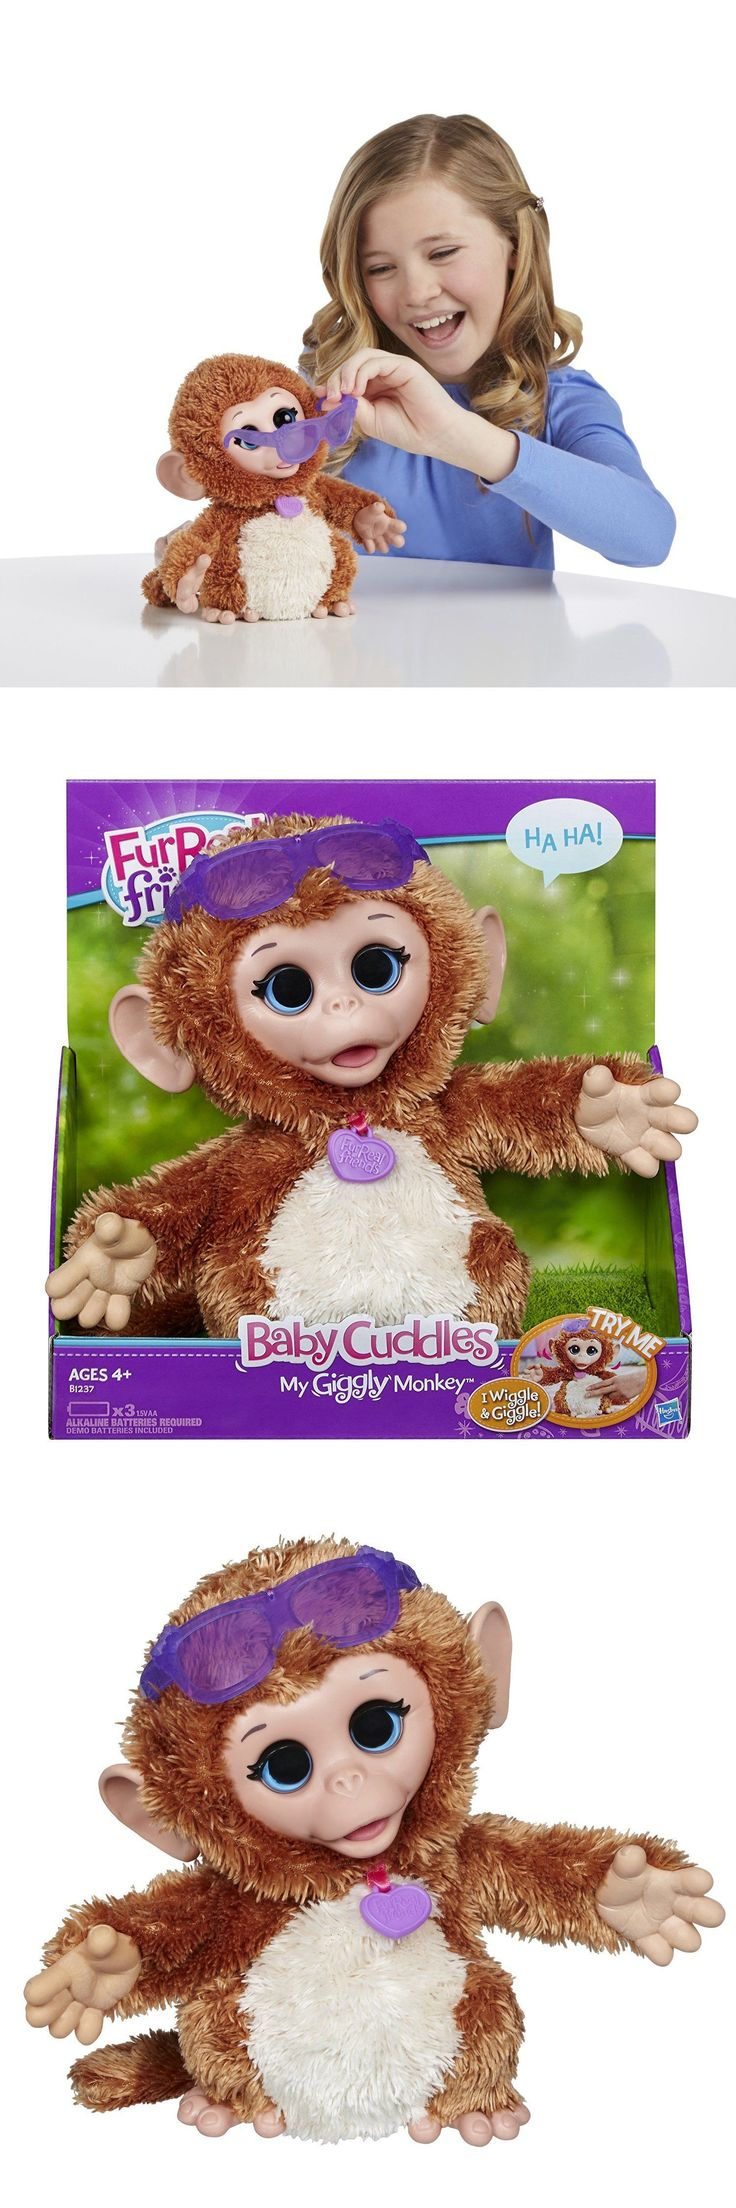 FurReal Friends 38288: Furreal Friends Baby Cuddles My Giggly Monkey By Hasbro New -> BUY IT NOW ONLY: $31.99 on eBay!